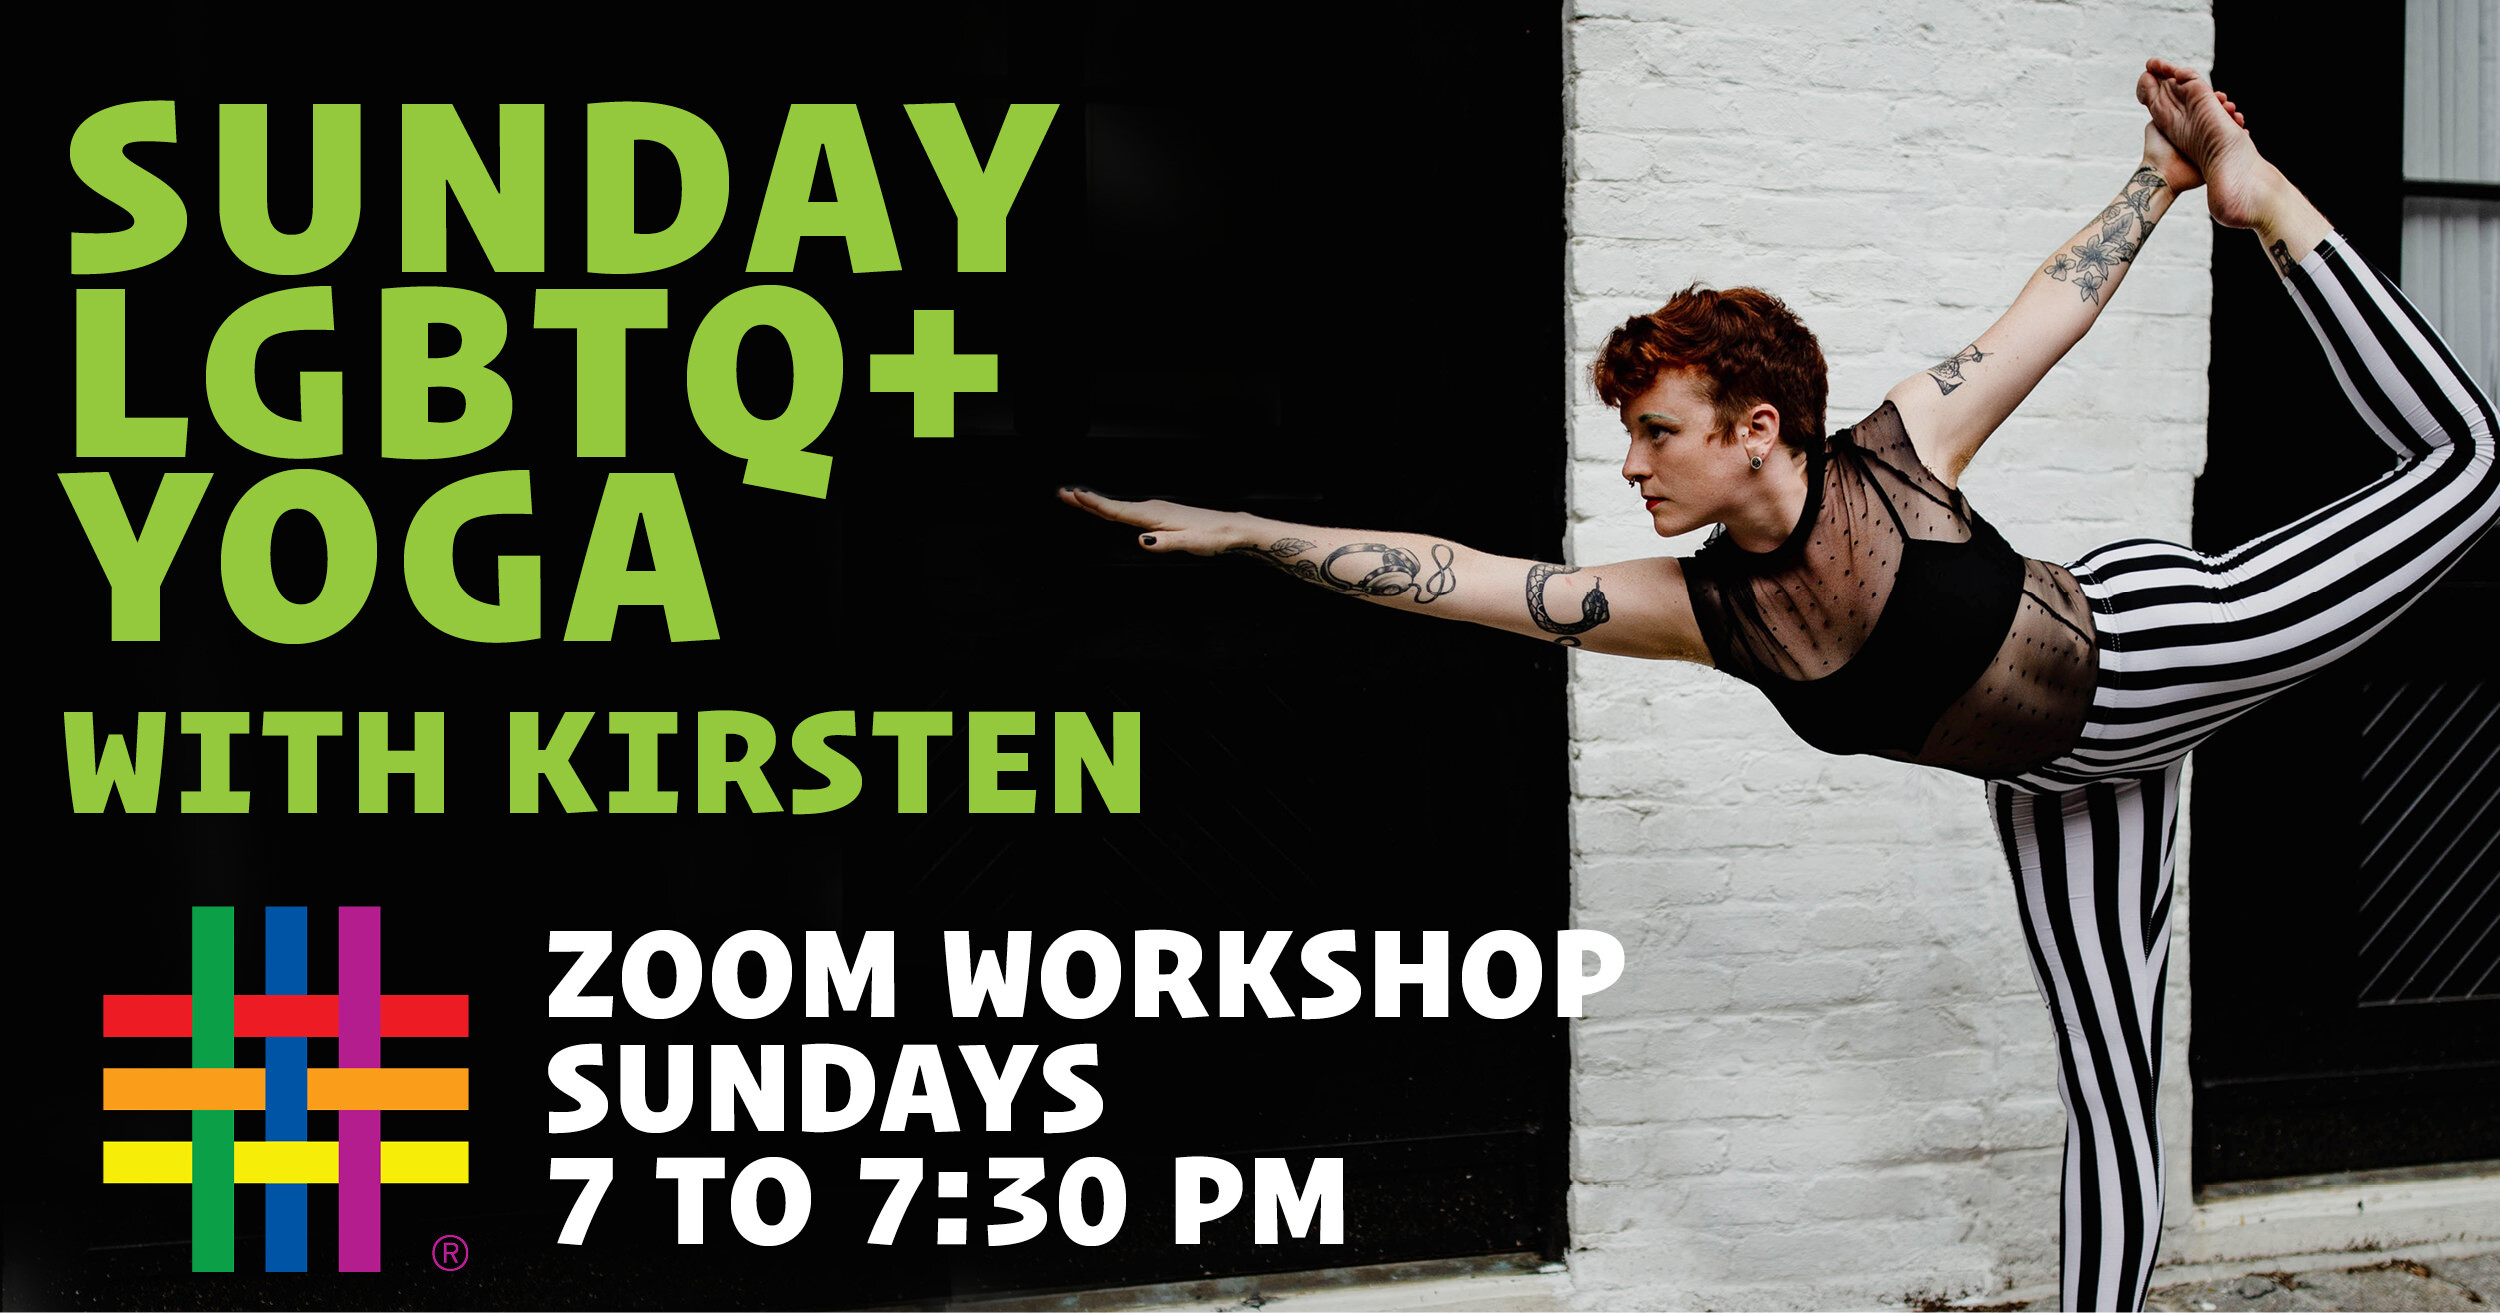 ZOOM CLASSES: LGBTQ+ Yoga Classes with Kirsten